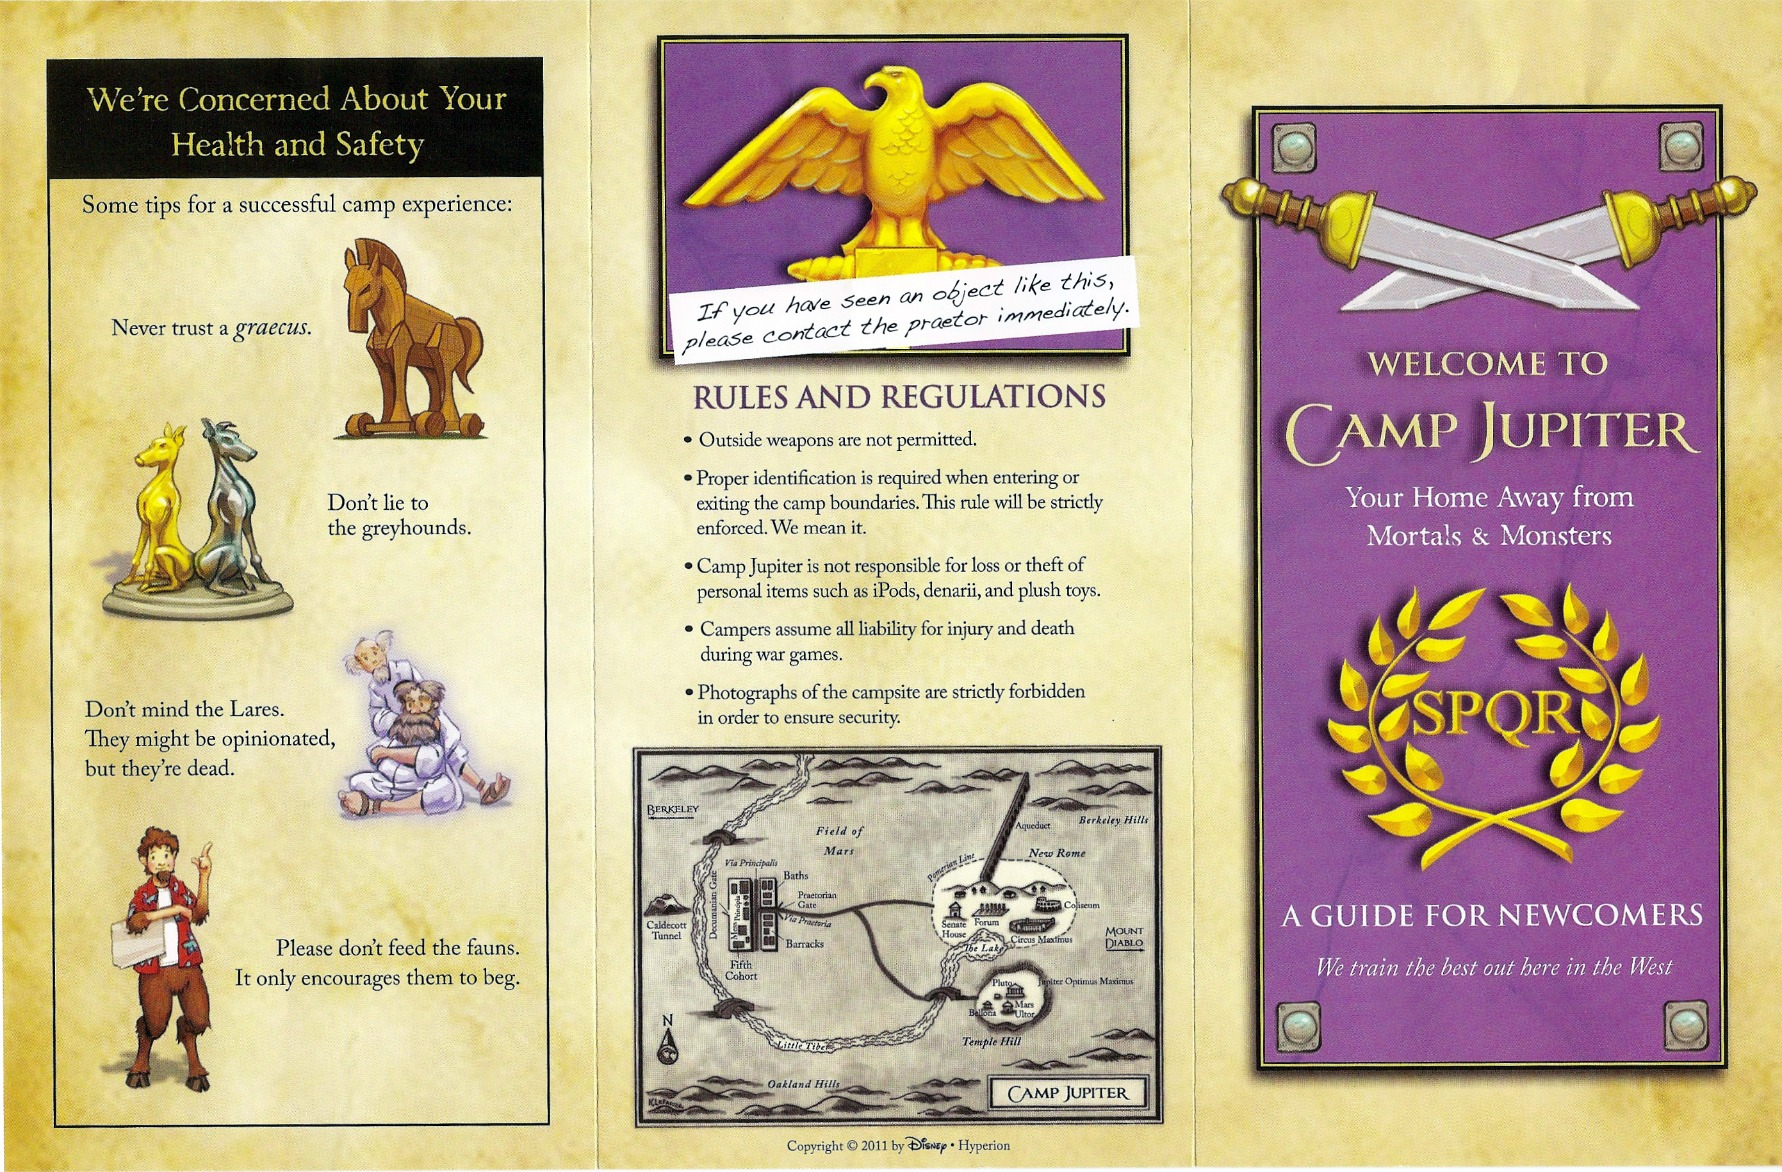 Camp Jupiter Brochure, side 1